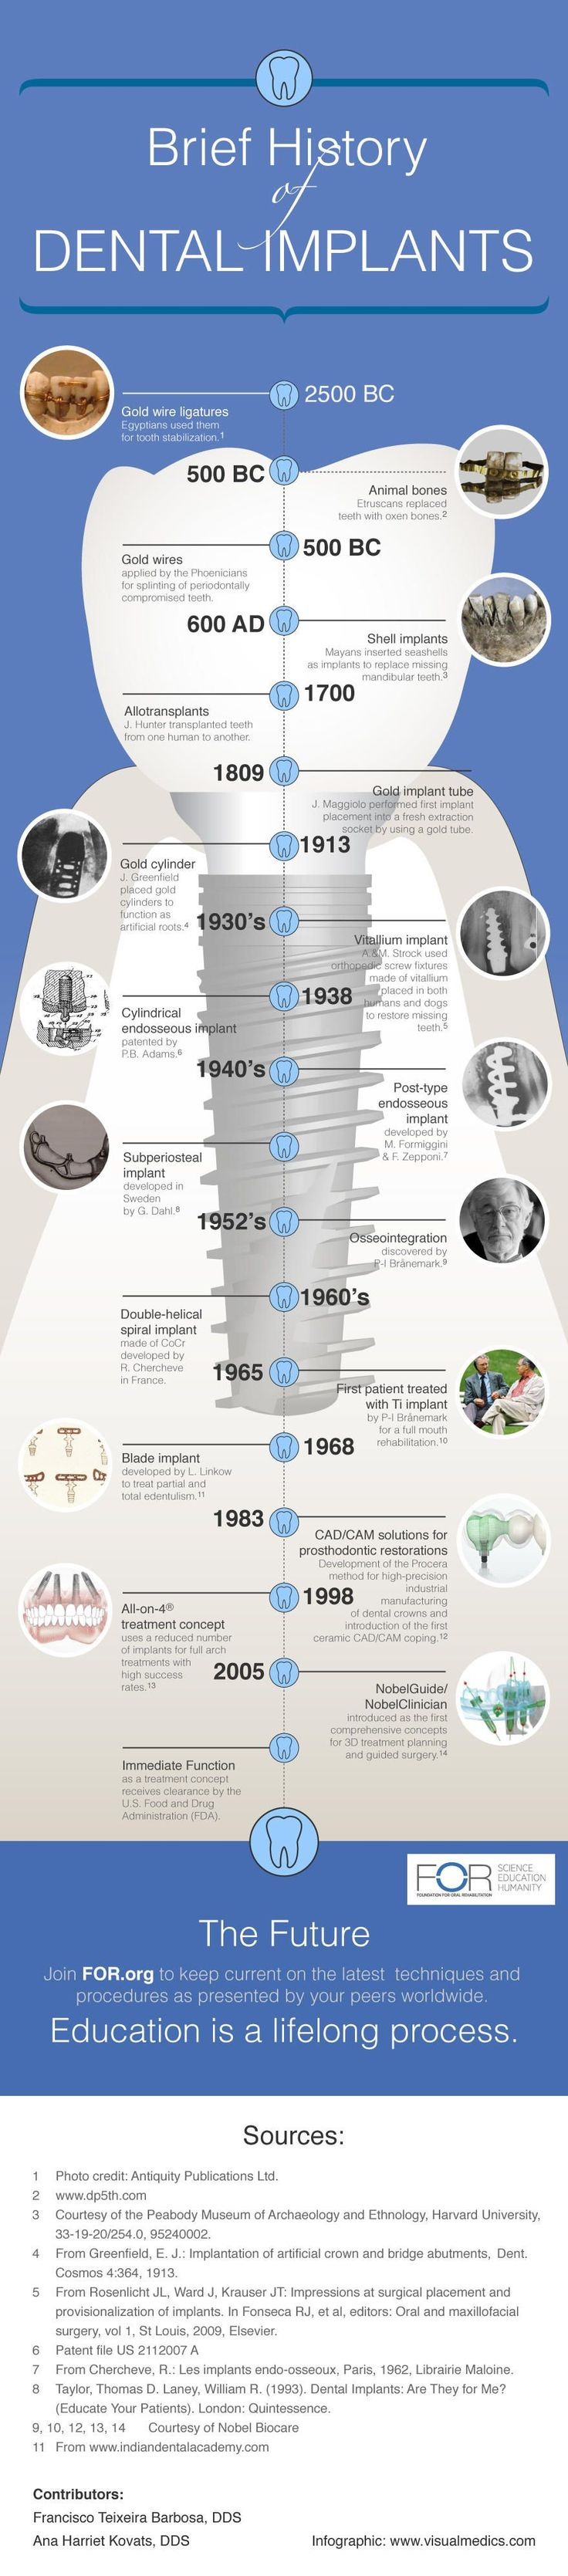 A Brief History of Dental Implants #Dentist #Infographic #dentalimplants